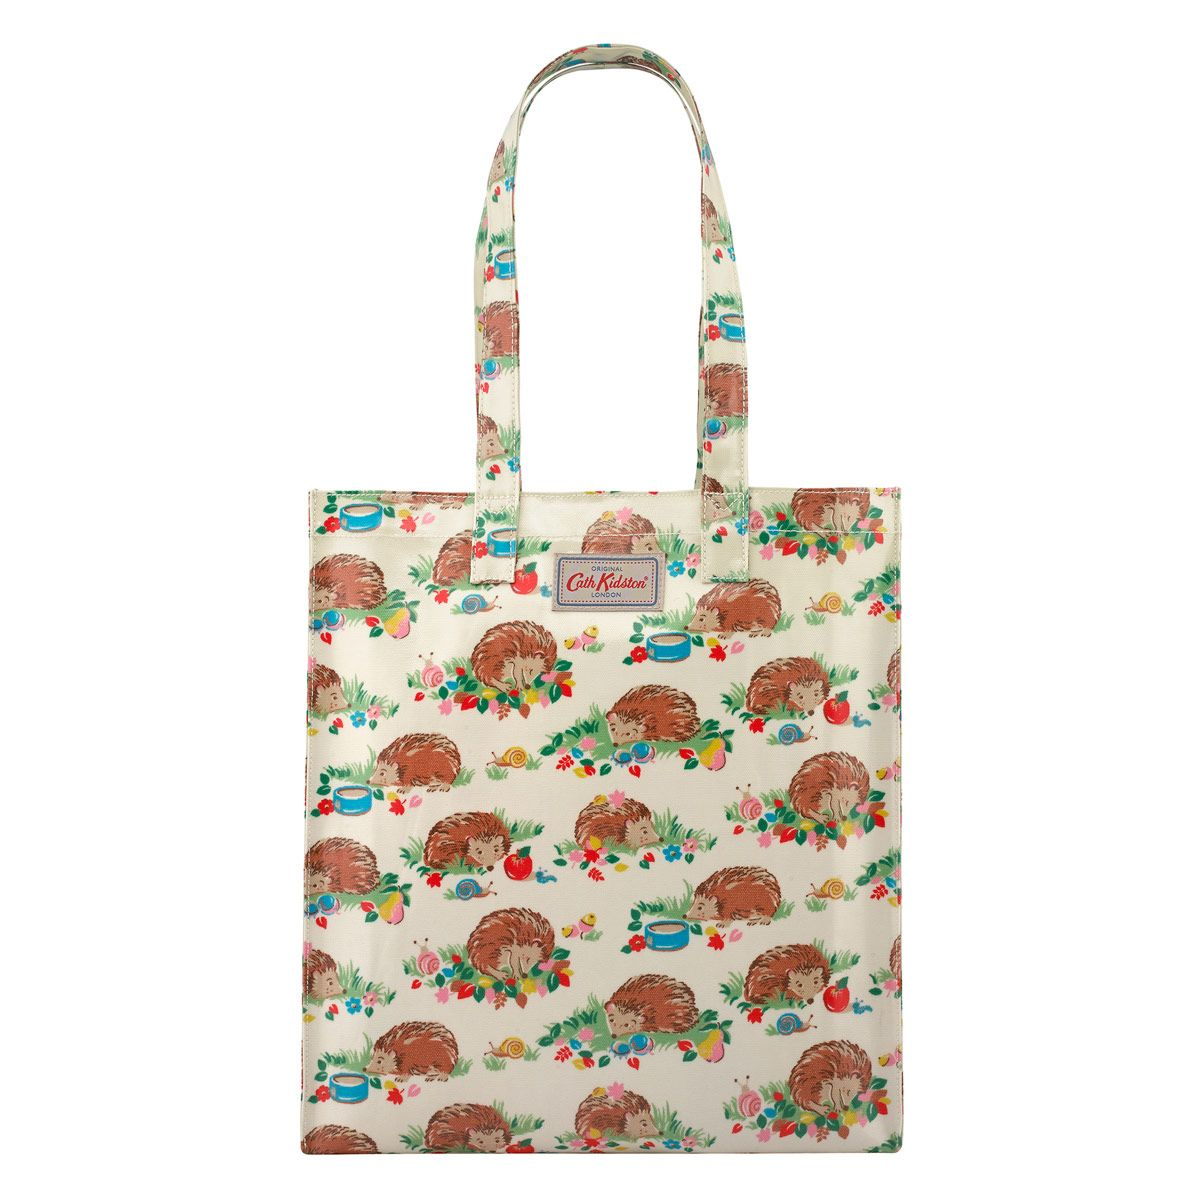 Hedgehogs Bookbag with Gusset | View All | CathKidston